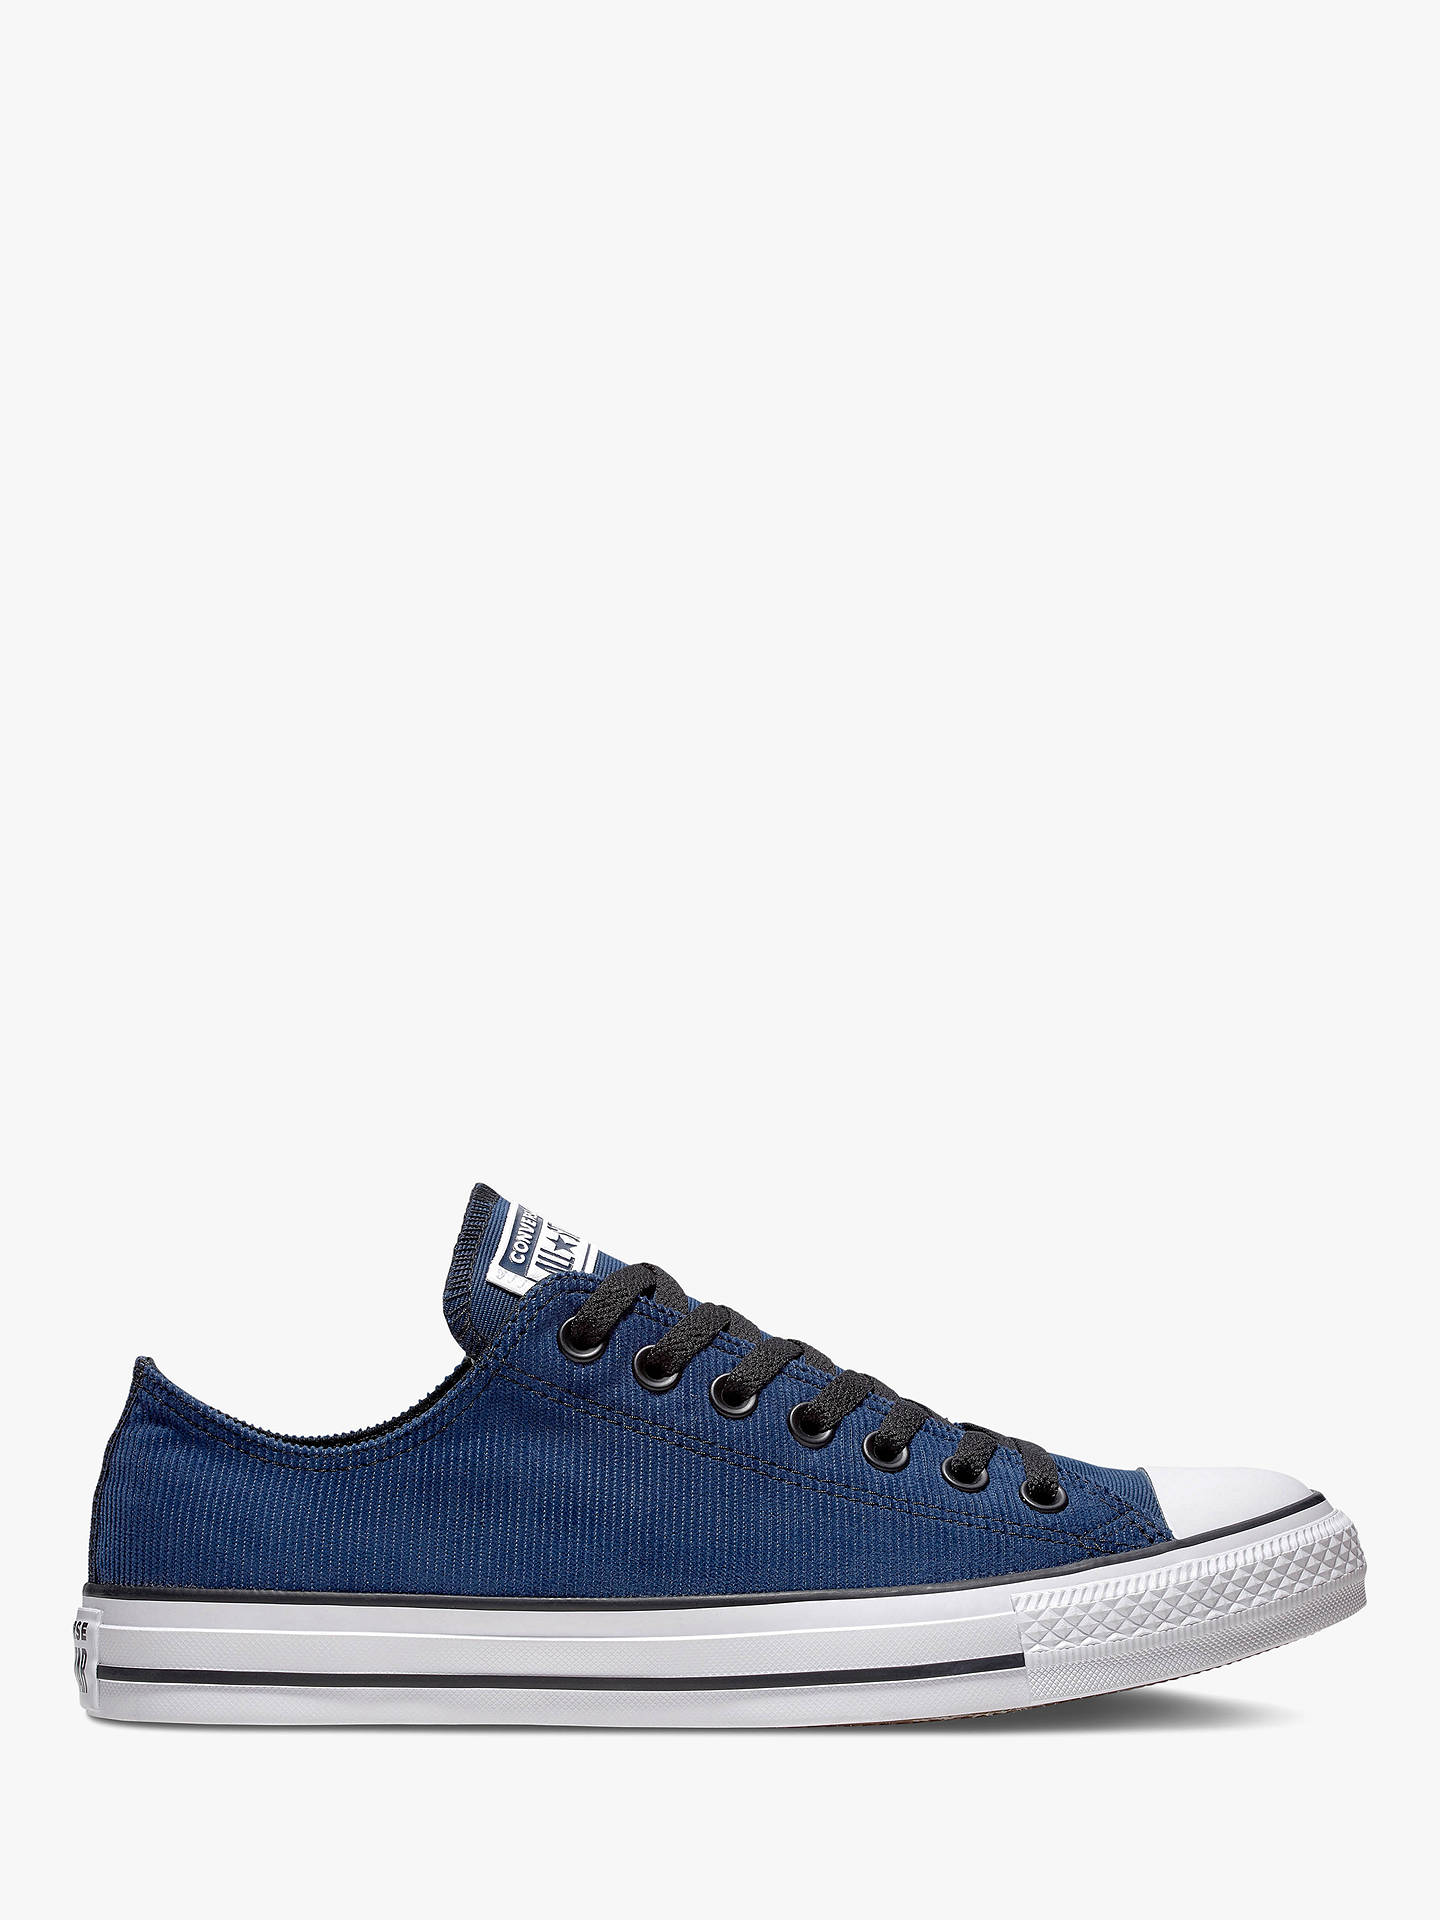 2be21a6bad04 Converse Chuck Taylor All Star Ox Trainers at John Lewis   Partners